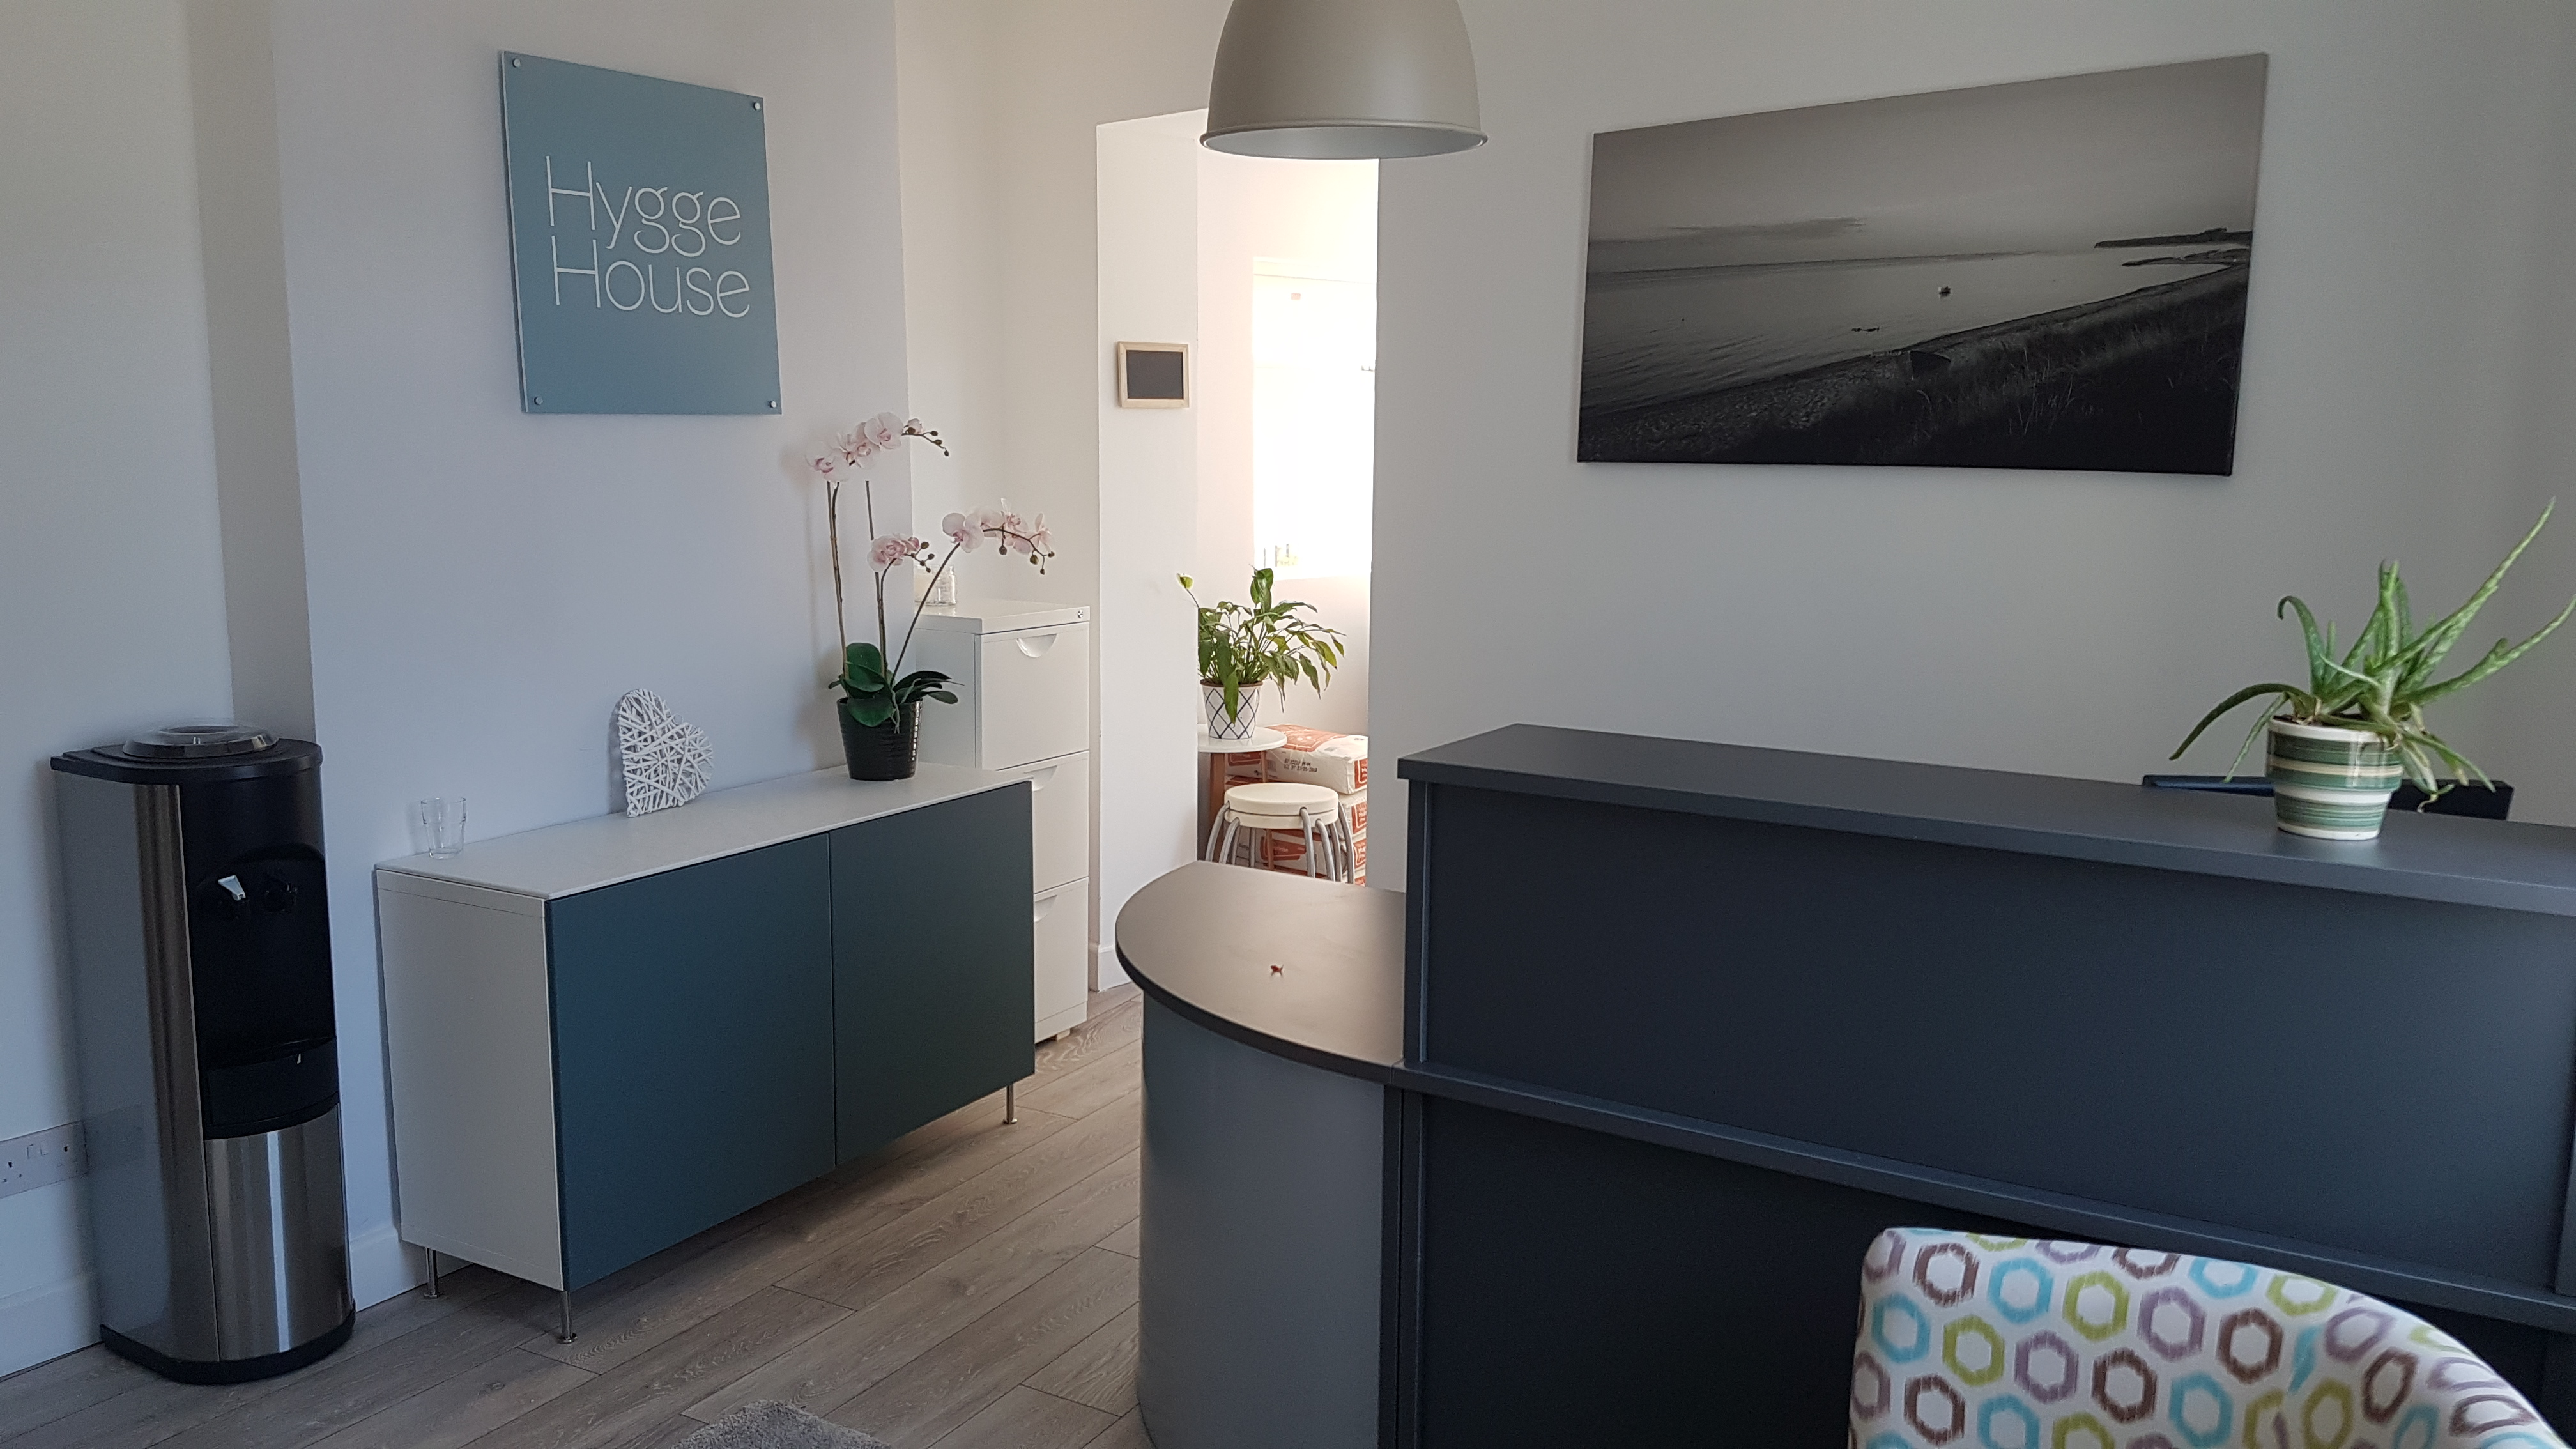 Hygge House Reception